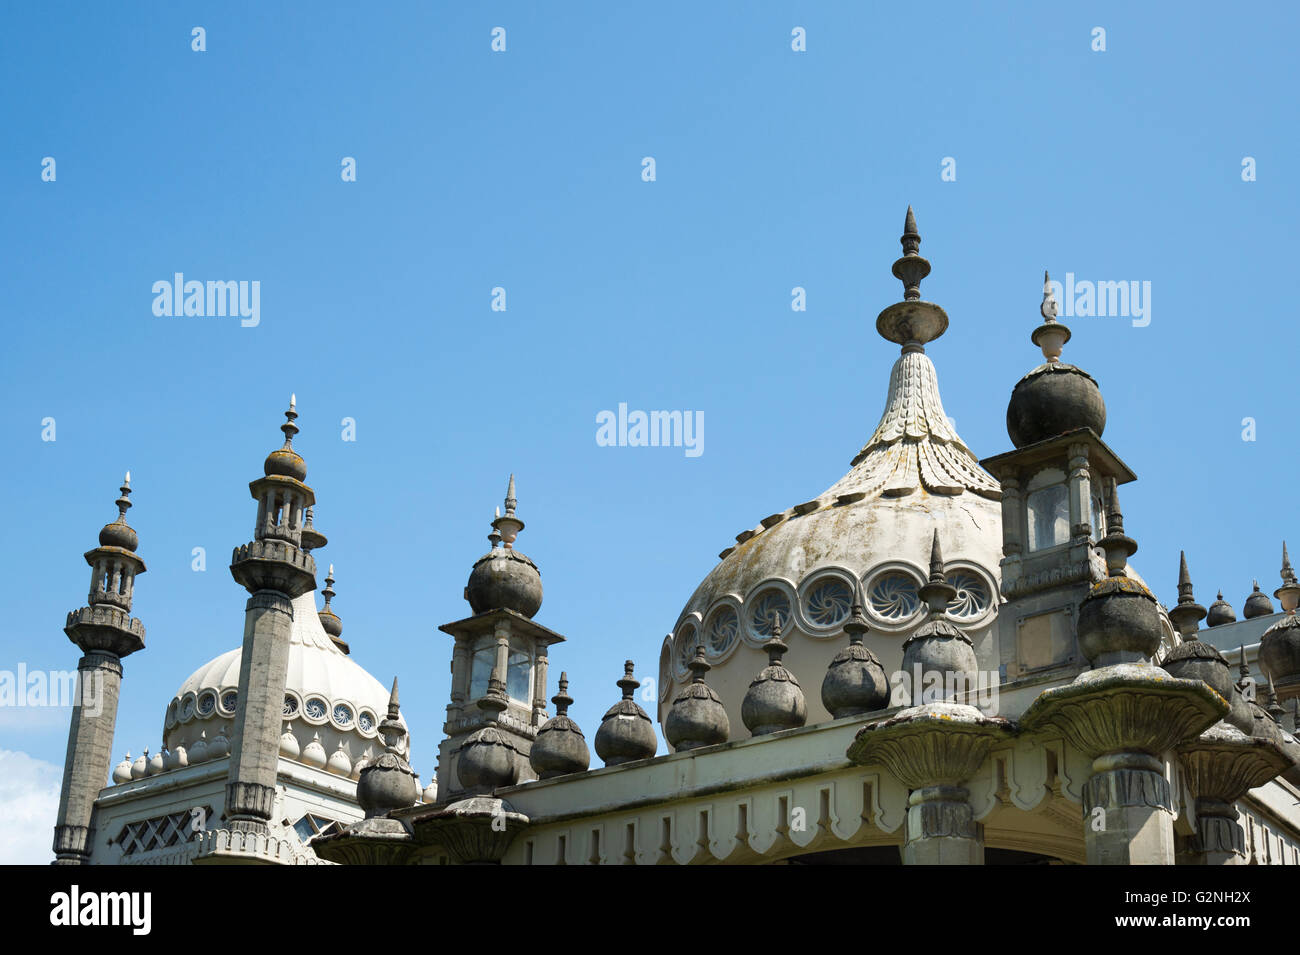 Domes on the top of Brighton pavillion - Stock Image